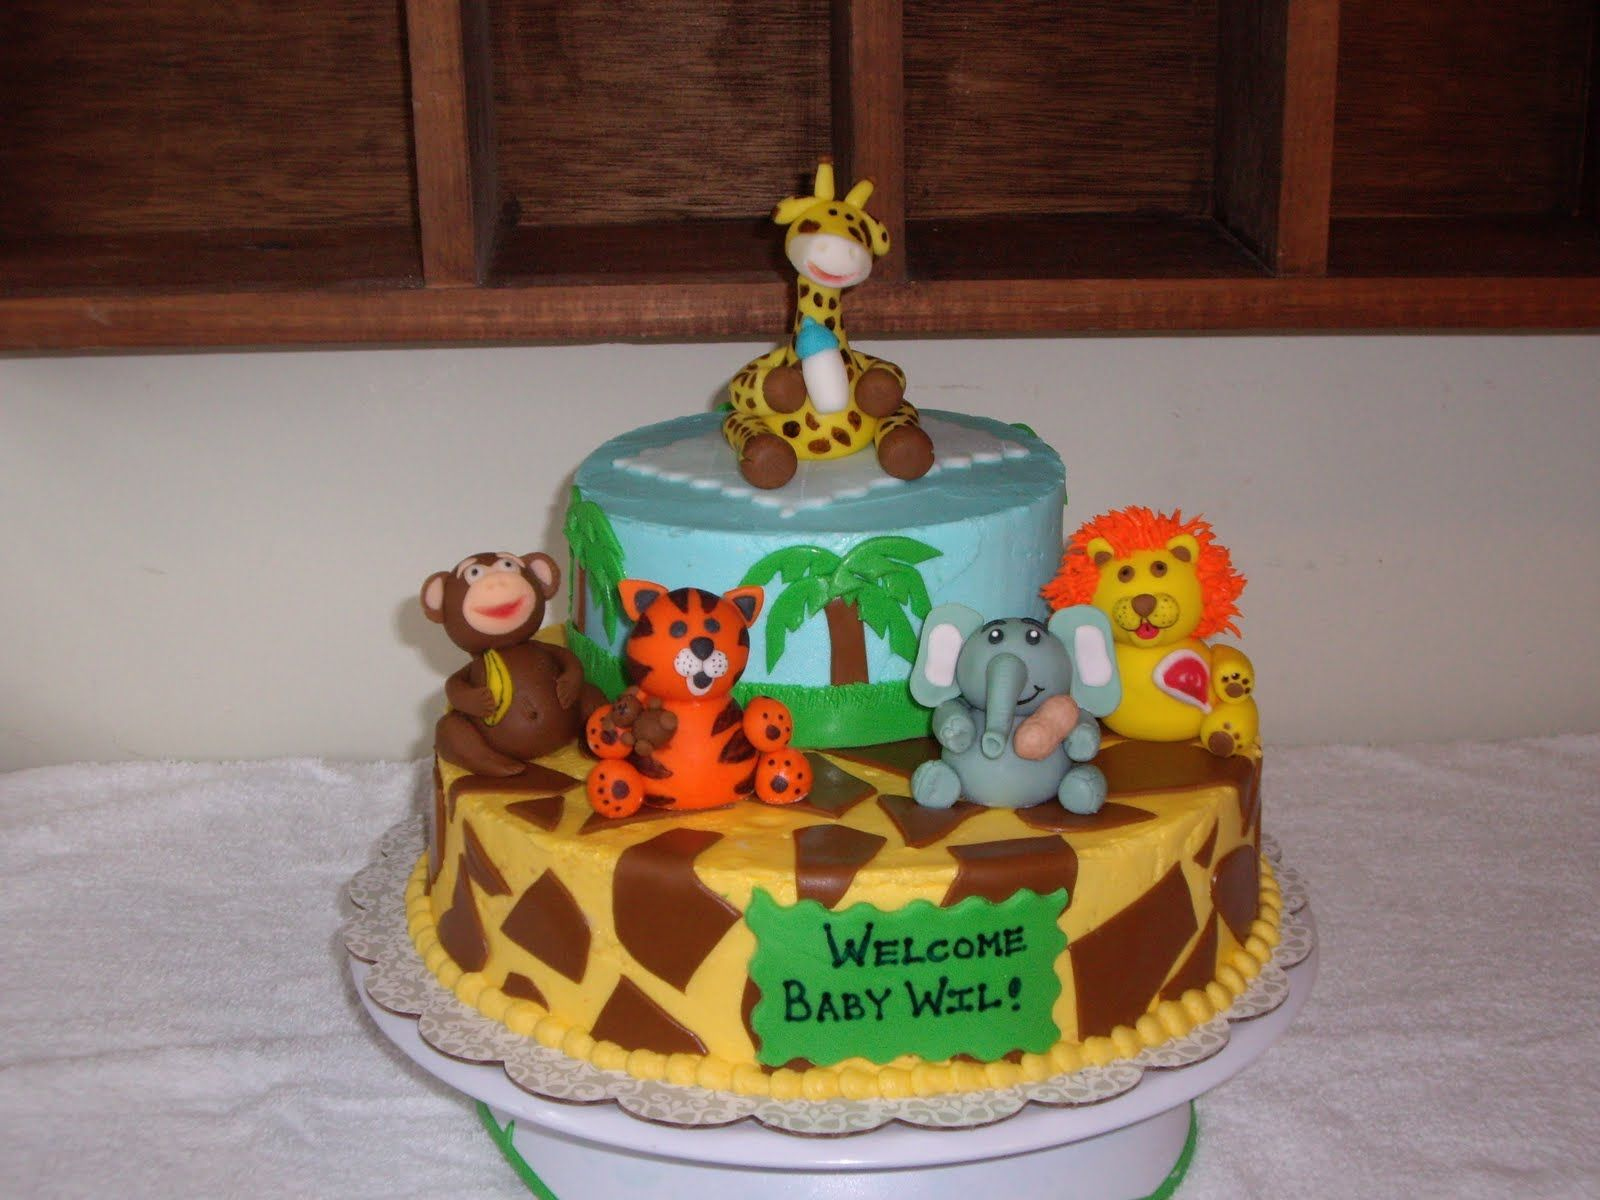 Baby Shower Cakes Zoo Animals Zoo animal baby shower cakes for a